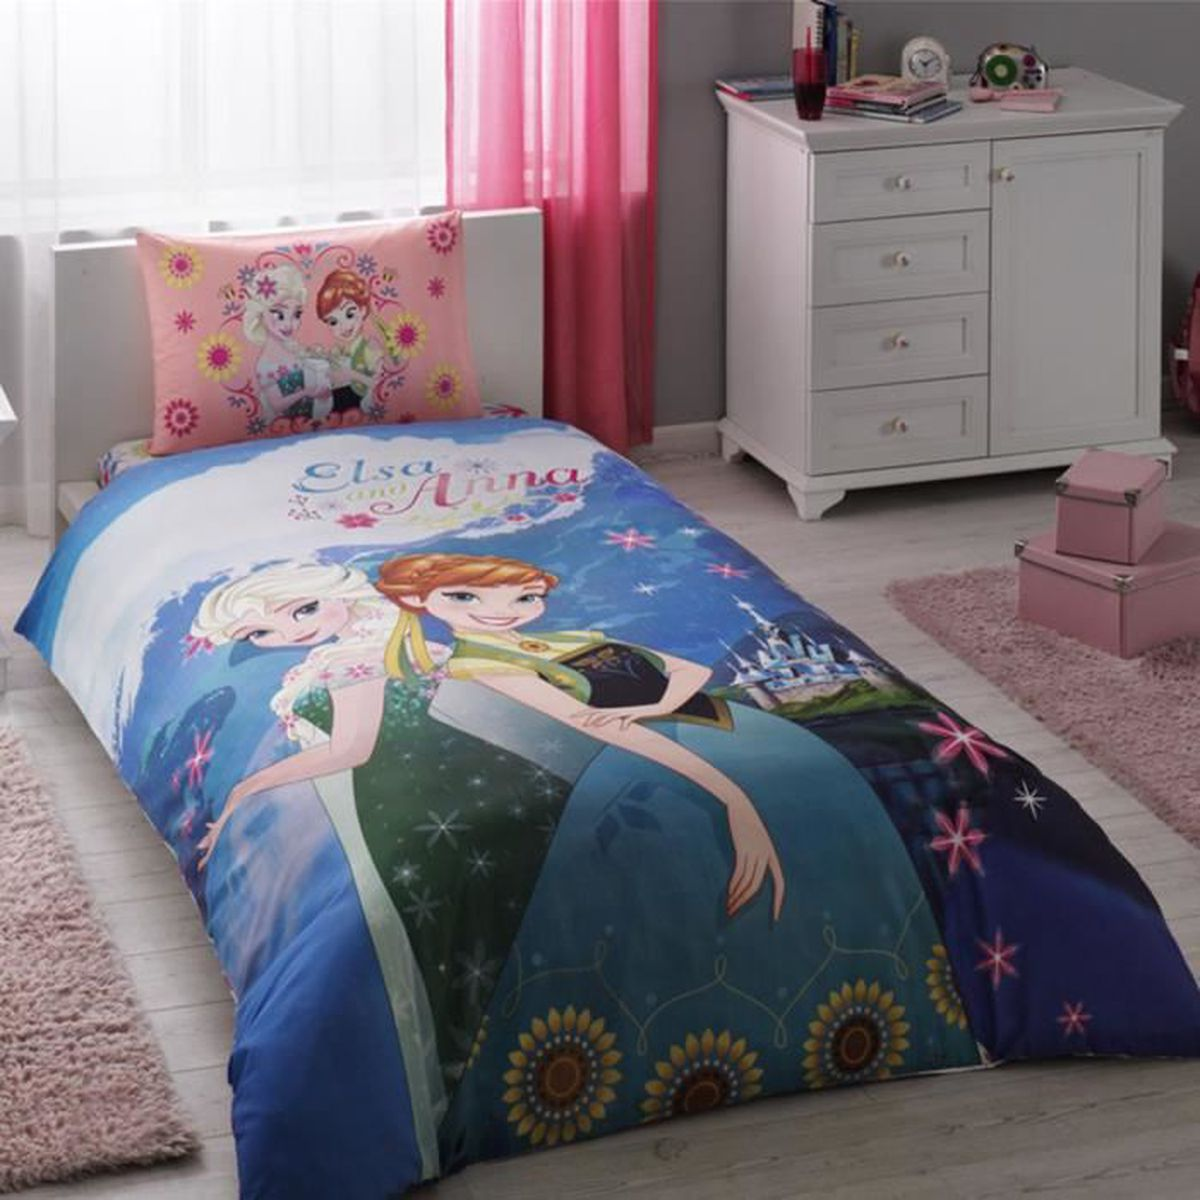 disney elsa anna imprim e 100 coton 1 personne parure de couette 3 pcs housse de couette. Black Bedroom Furniture Sets. Home Design Ideas